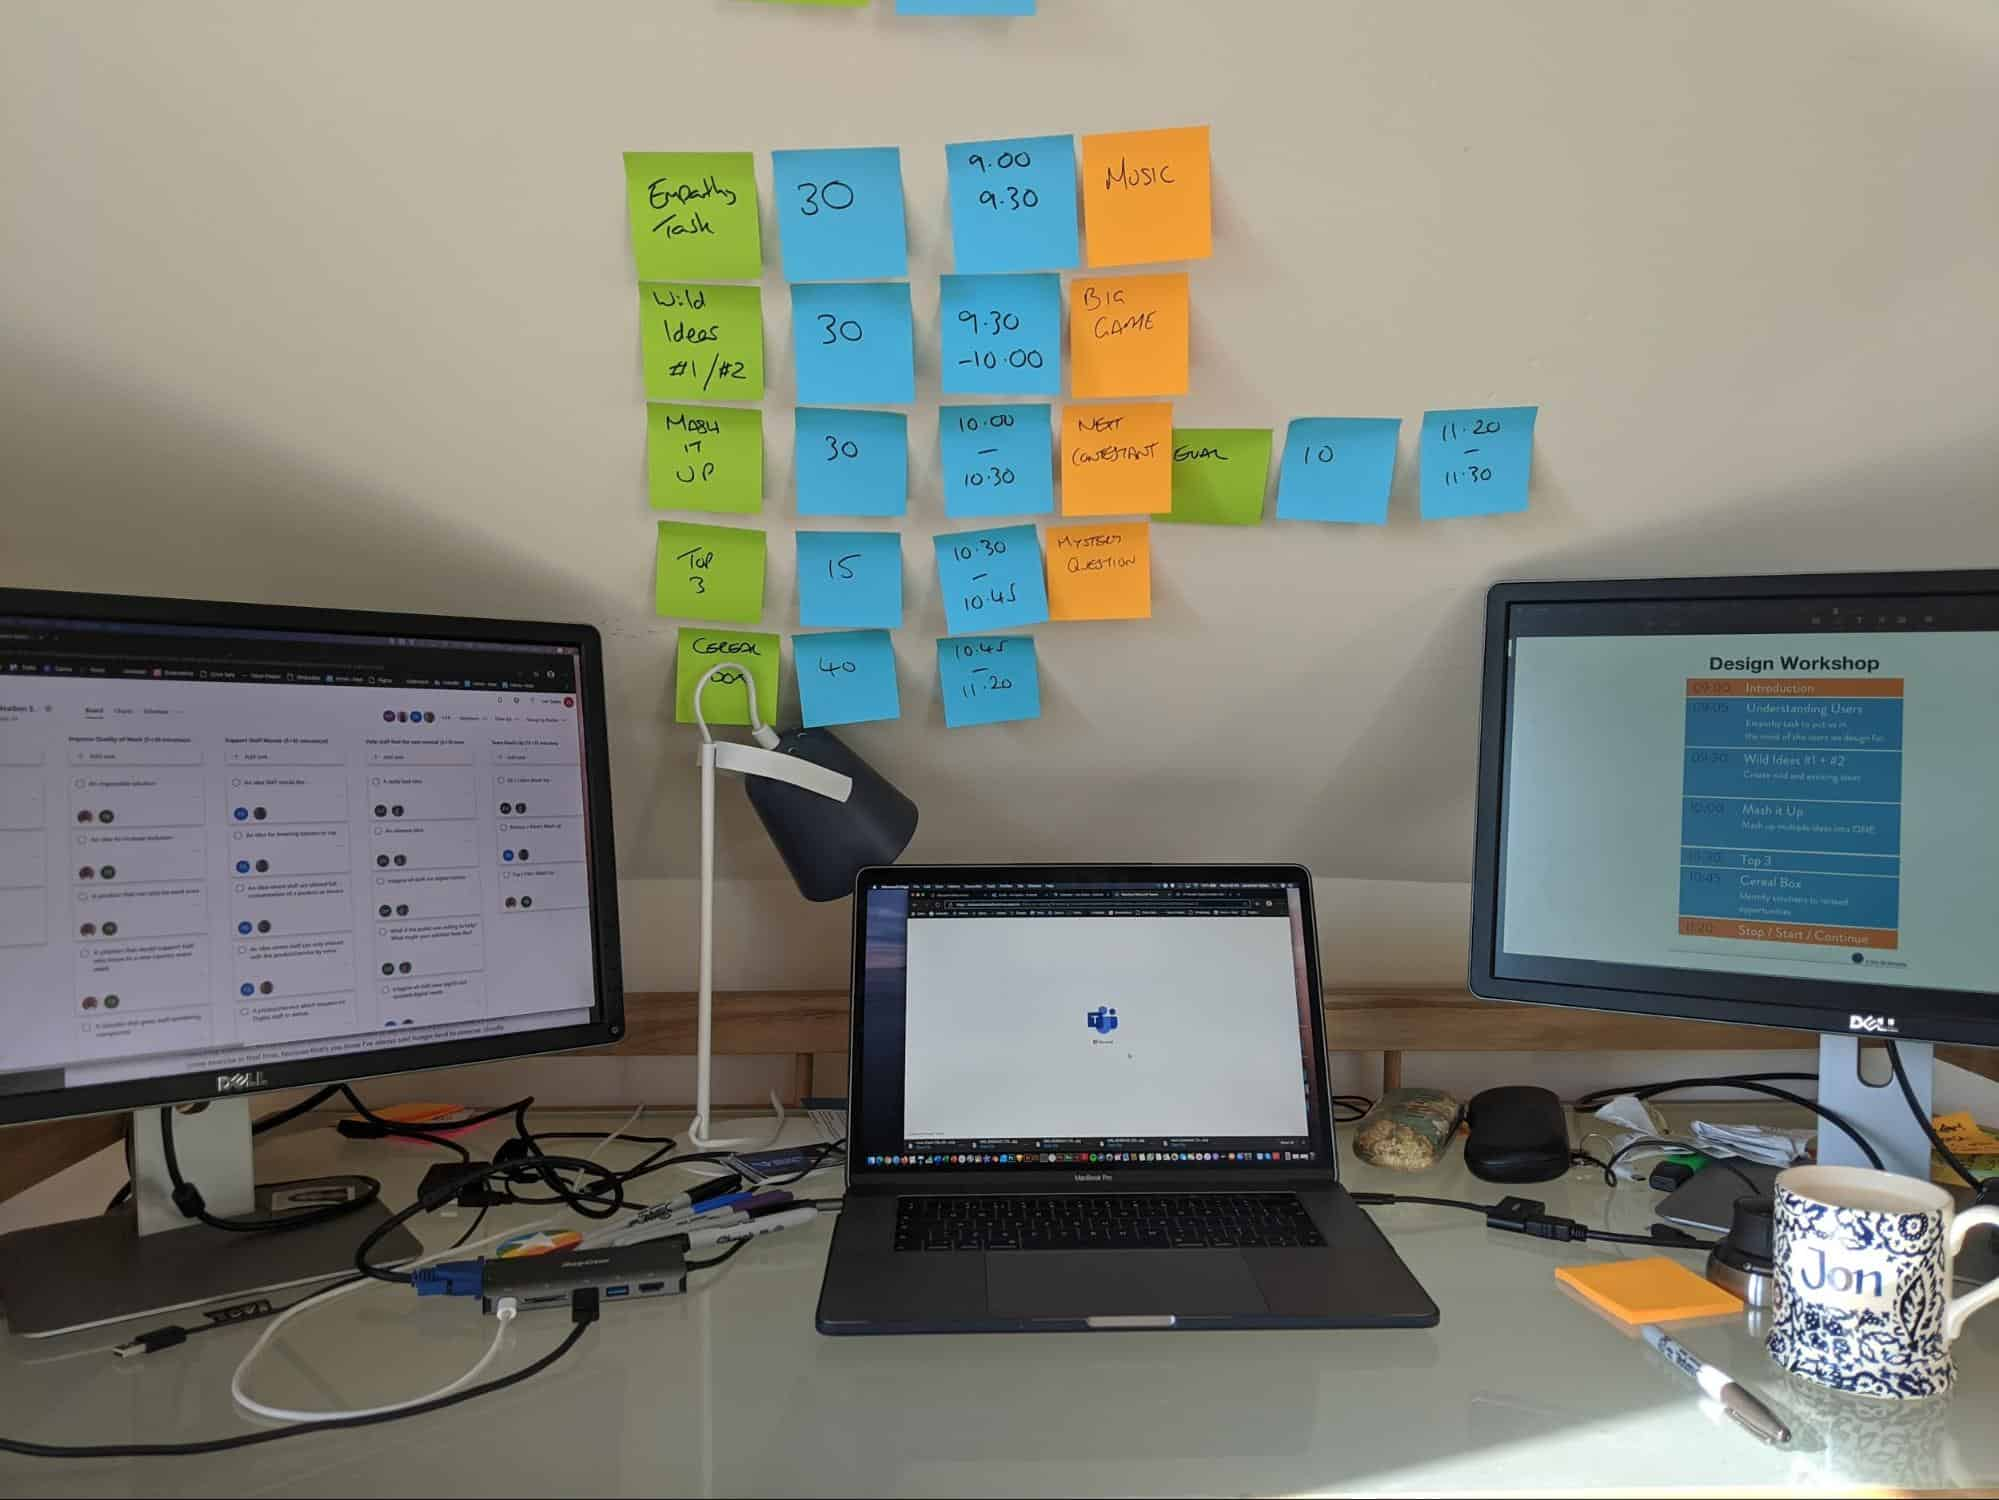 Three computers on a desk with post-it notes on the wall